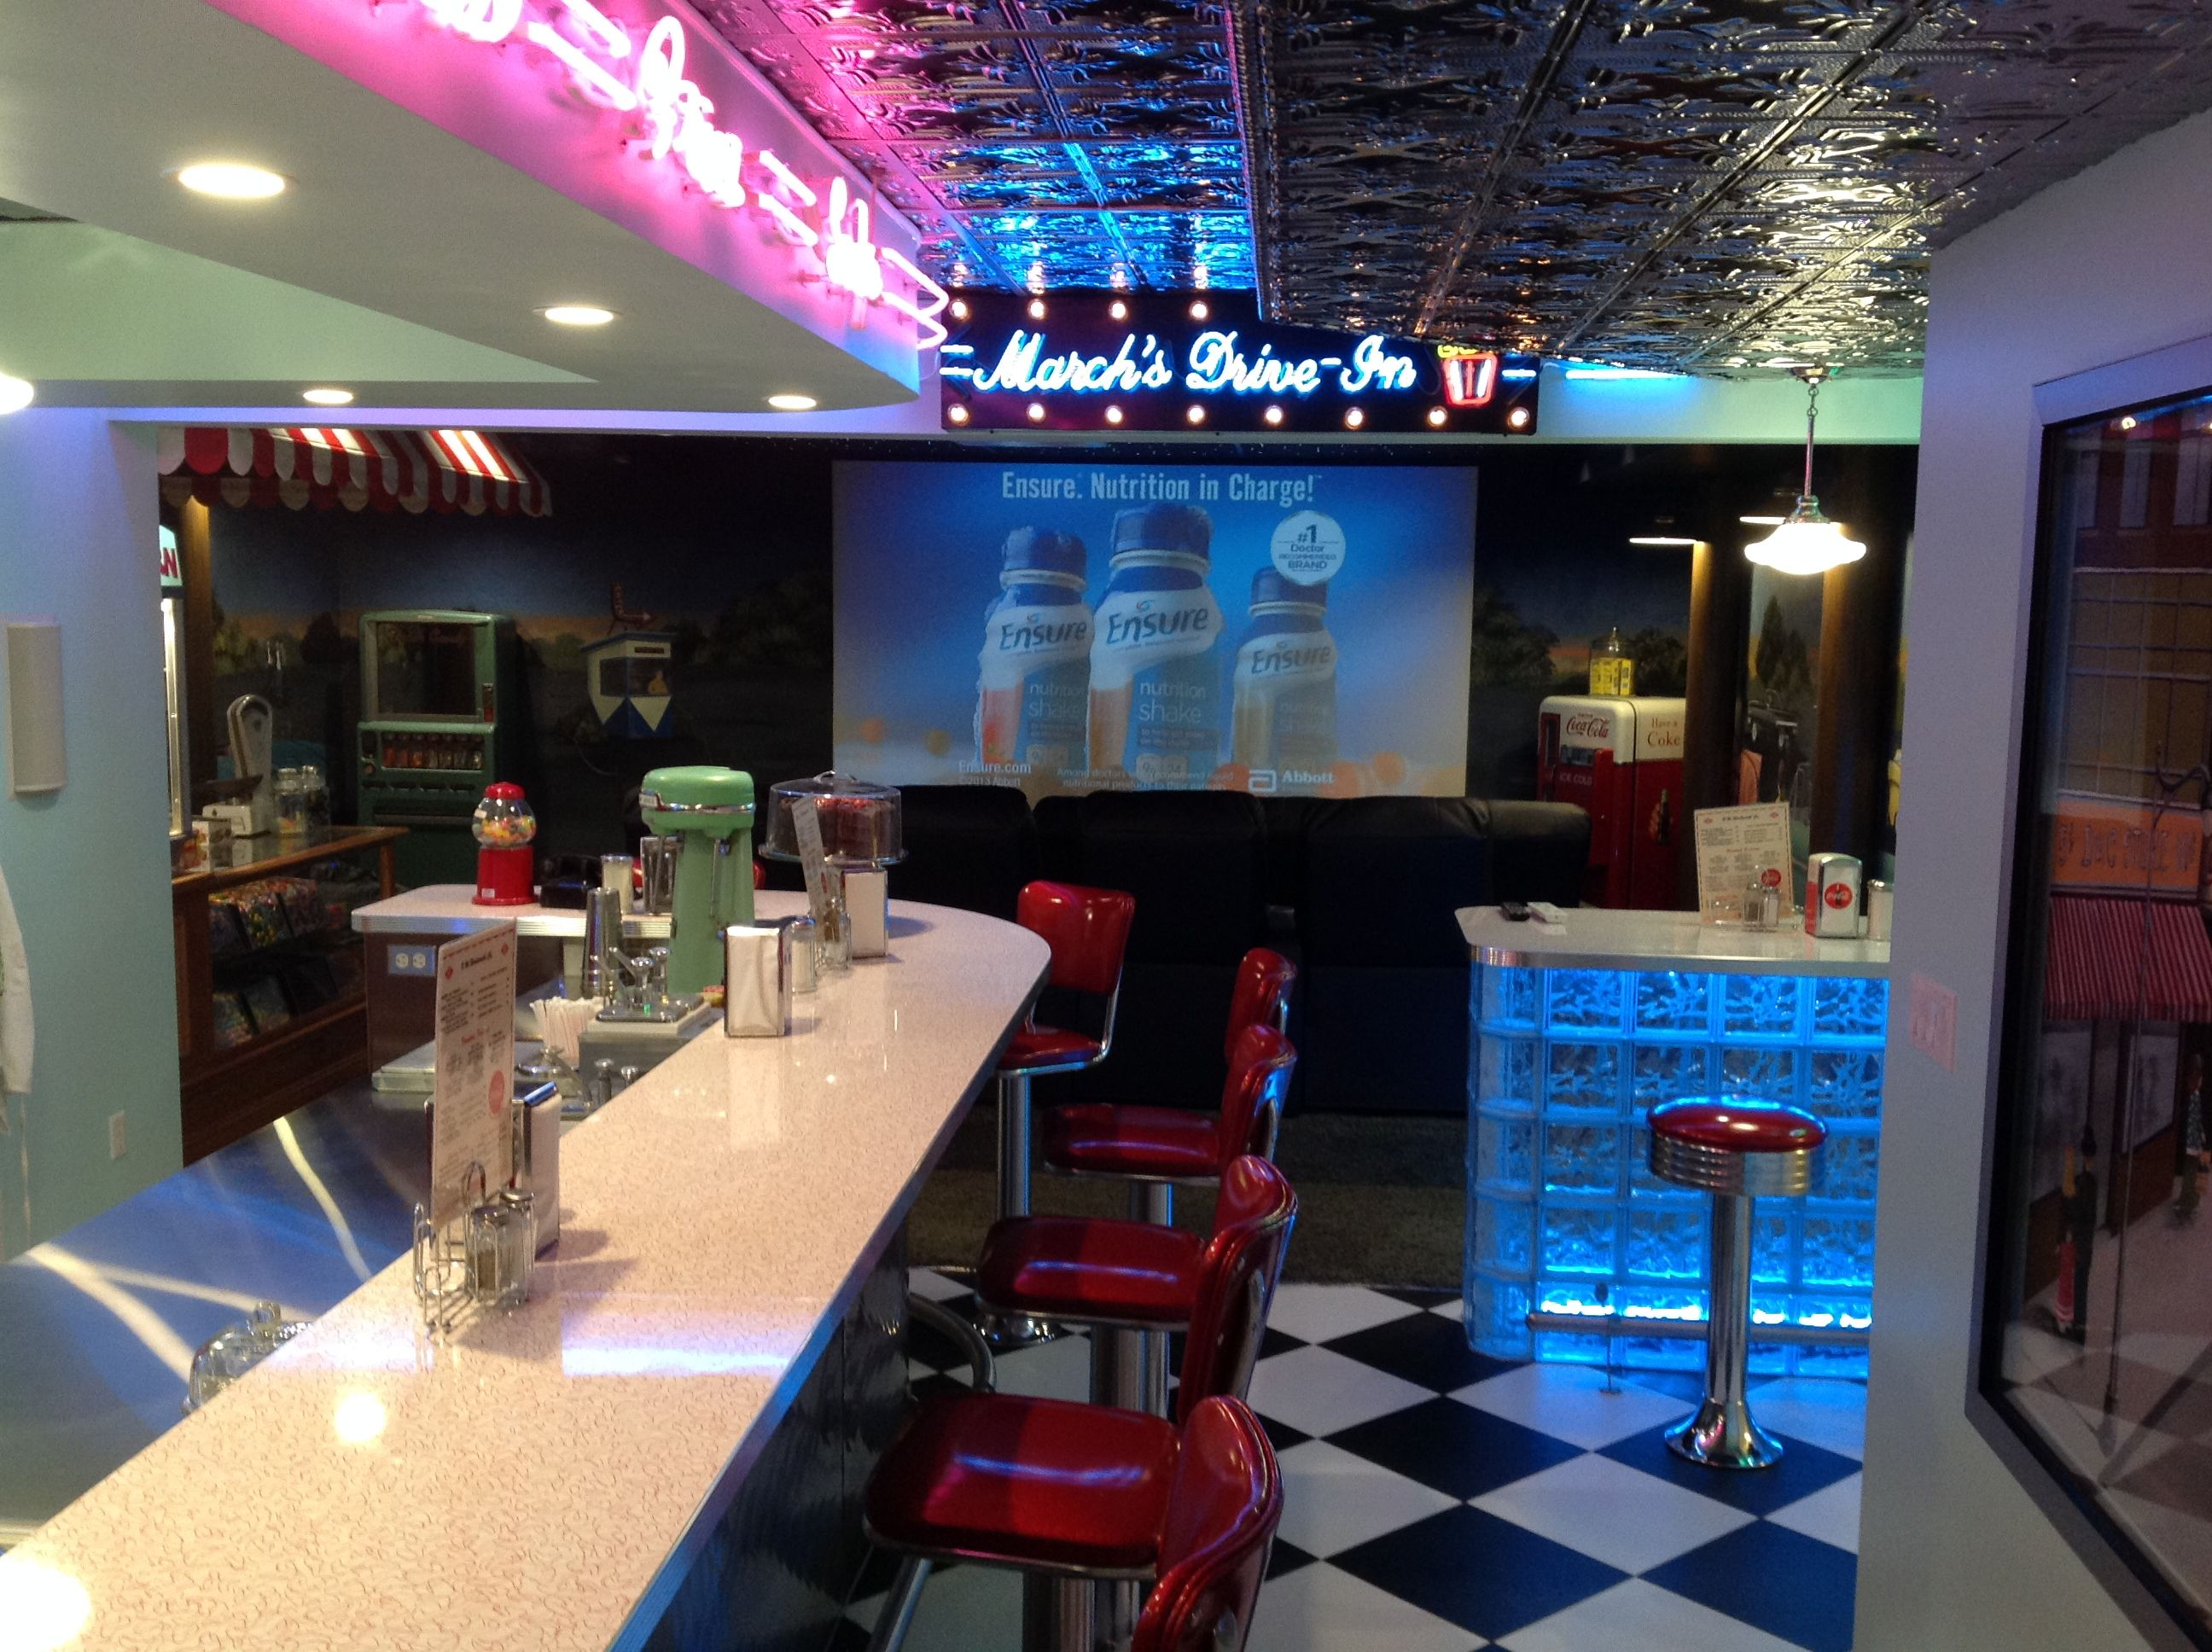 50 39 s diner and 50 39 s style drive in theater room in a for Diner home decor